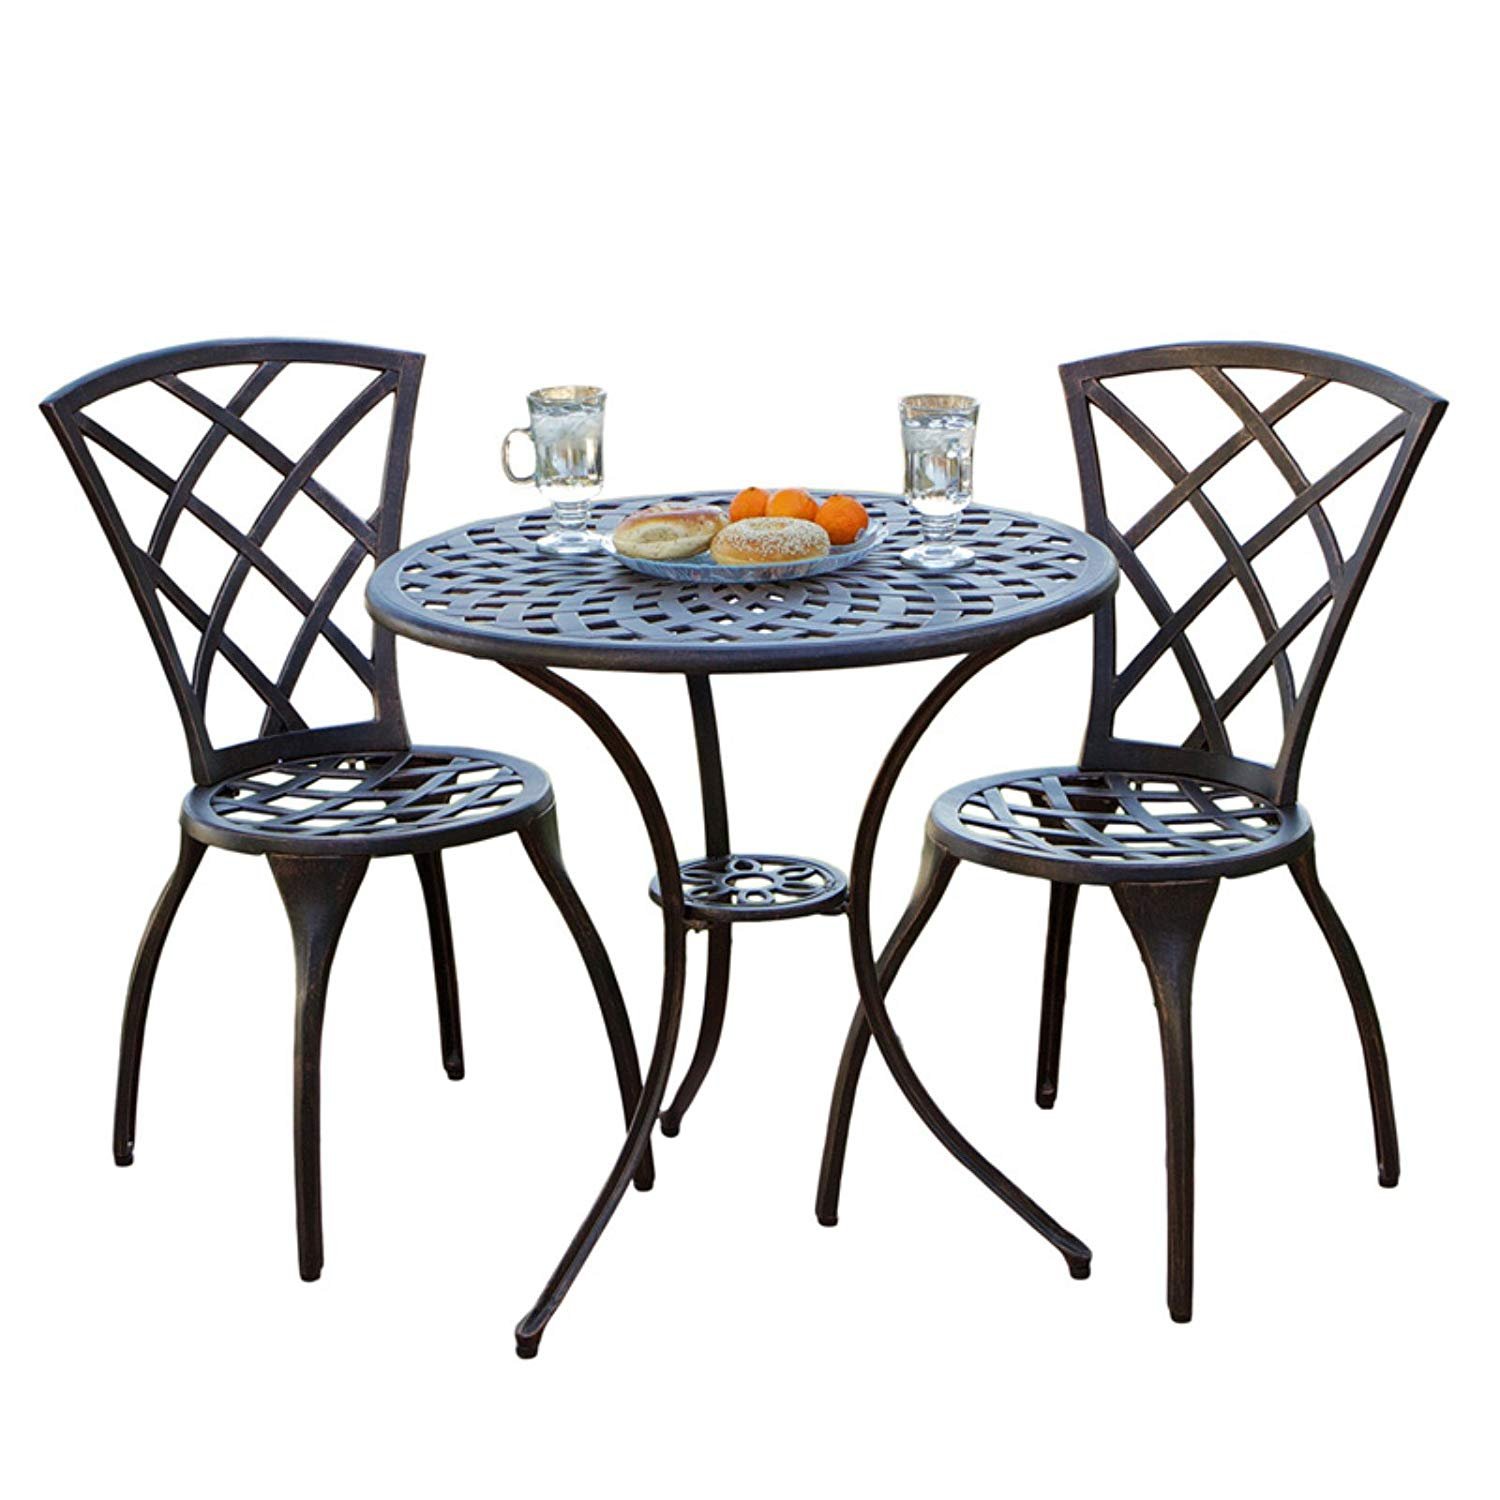 Elegant Outdoor 3 Piece Patio Bistro Set With 2 Chairs And Table With 2 Inch Hole For Umbrella, Durable Aluminum Construction, Hidden Rubber Feet To Protect The Flooring, Bronze Finish